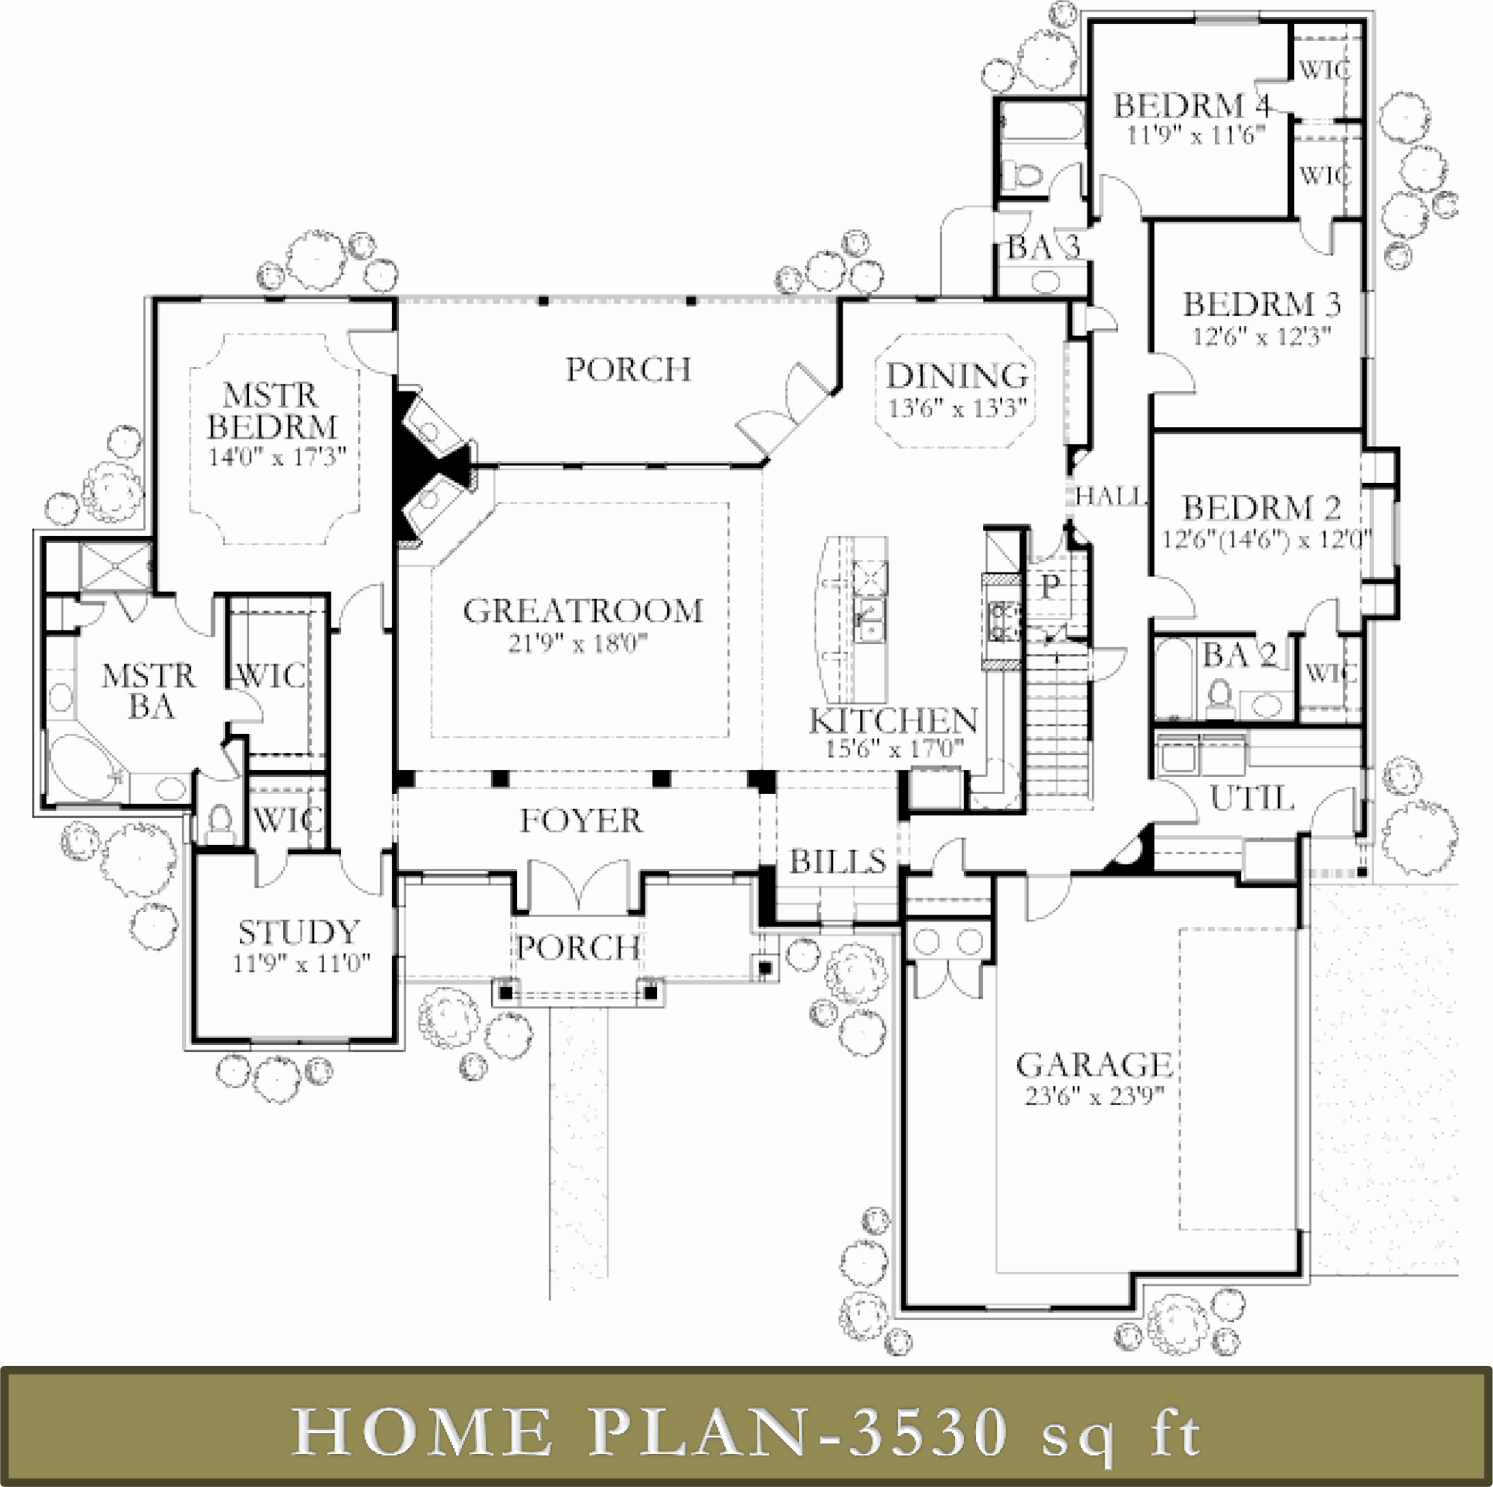 3500 4000 sq ft homes glazier homes for 3500 sq ft house plans